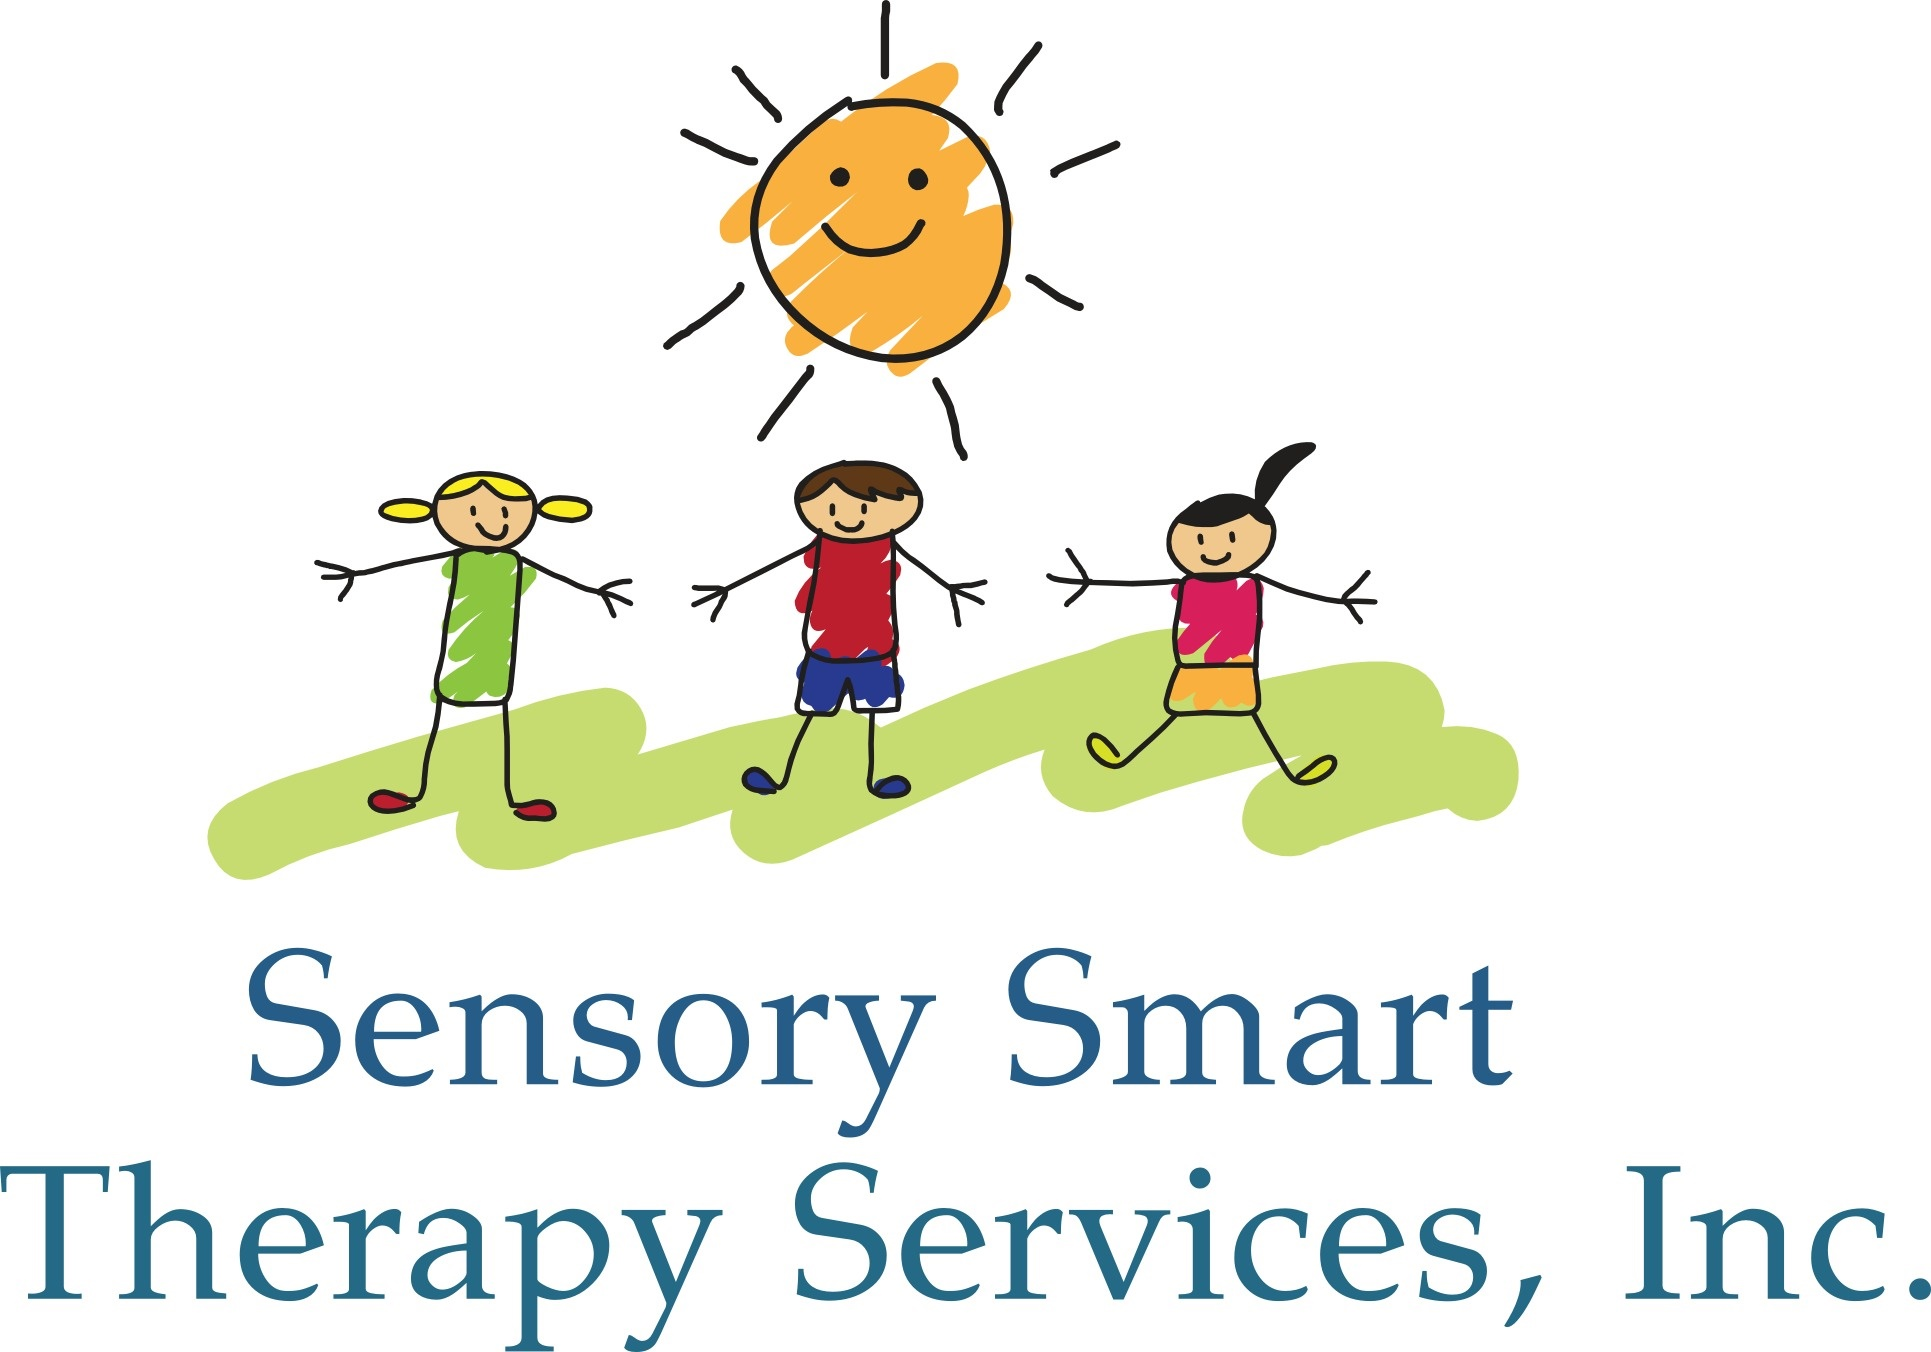 Sensory Smart Therapy Services Inc.